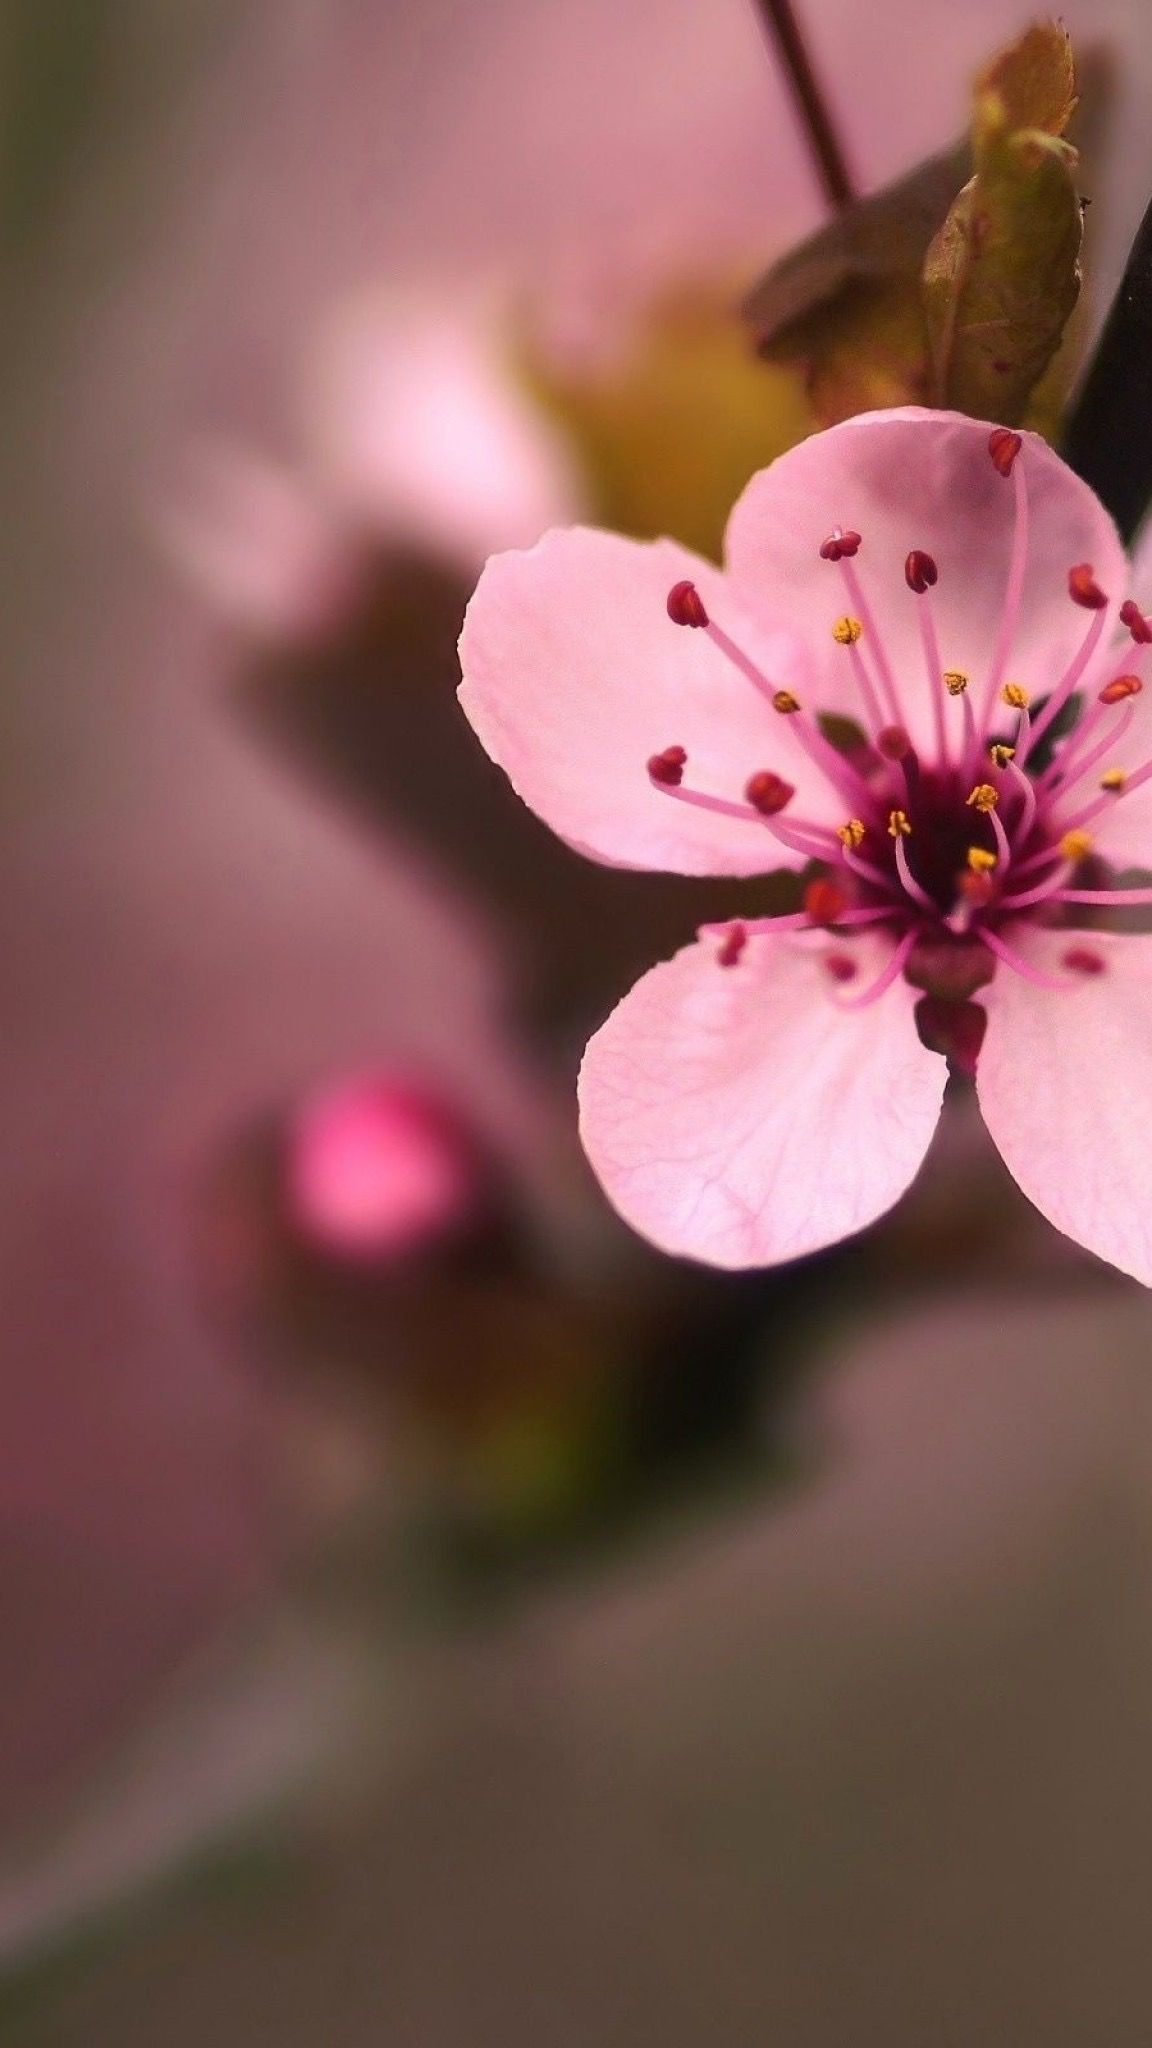 Pin By Maria Martinez On Wallpapers For My Phone Cherry Blossom Flowers Iphone 6 Flower Wallpaper Cherry Blossom Wallpaper